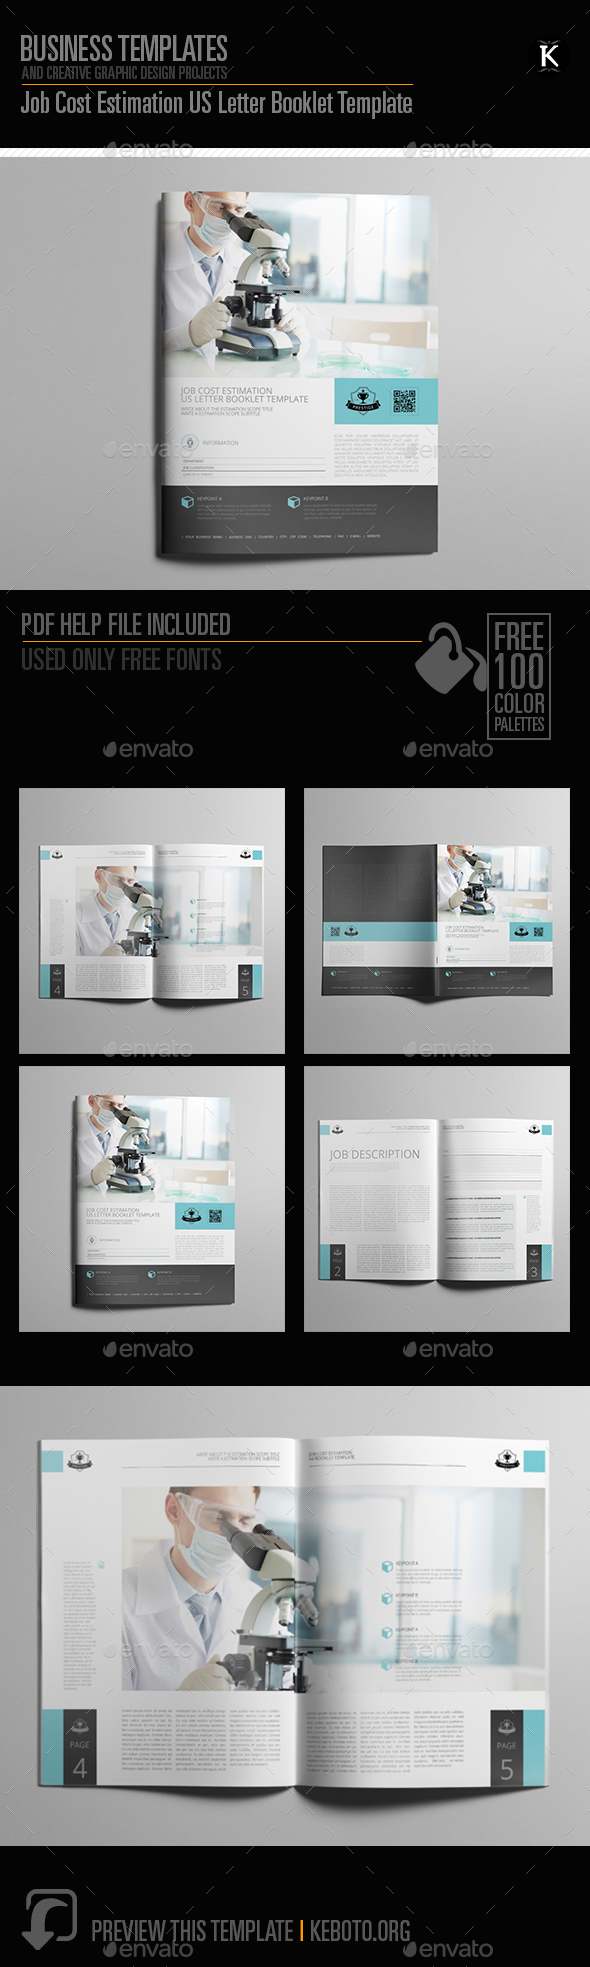 Job Cost Estimation US Letter Booklet Template - Miscellaneous Print Templates